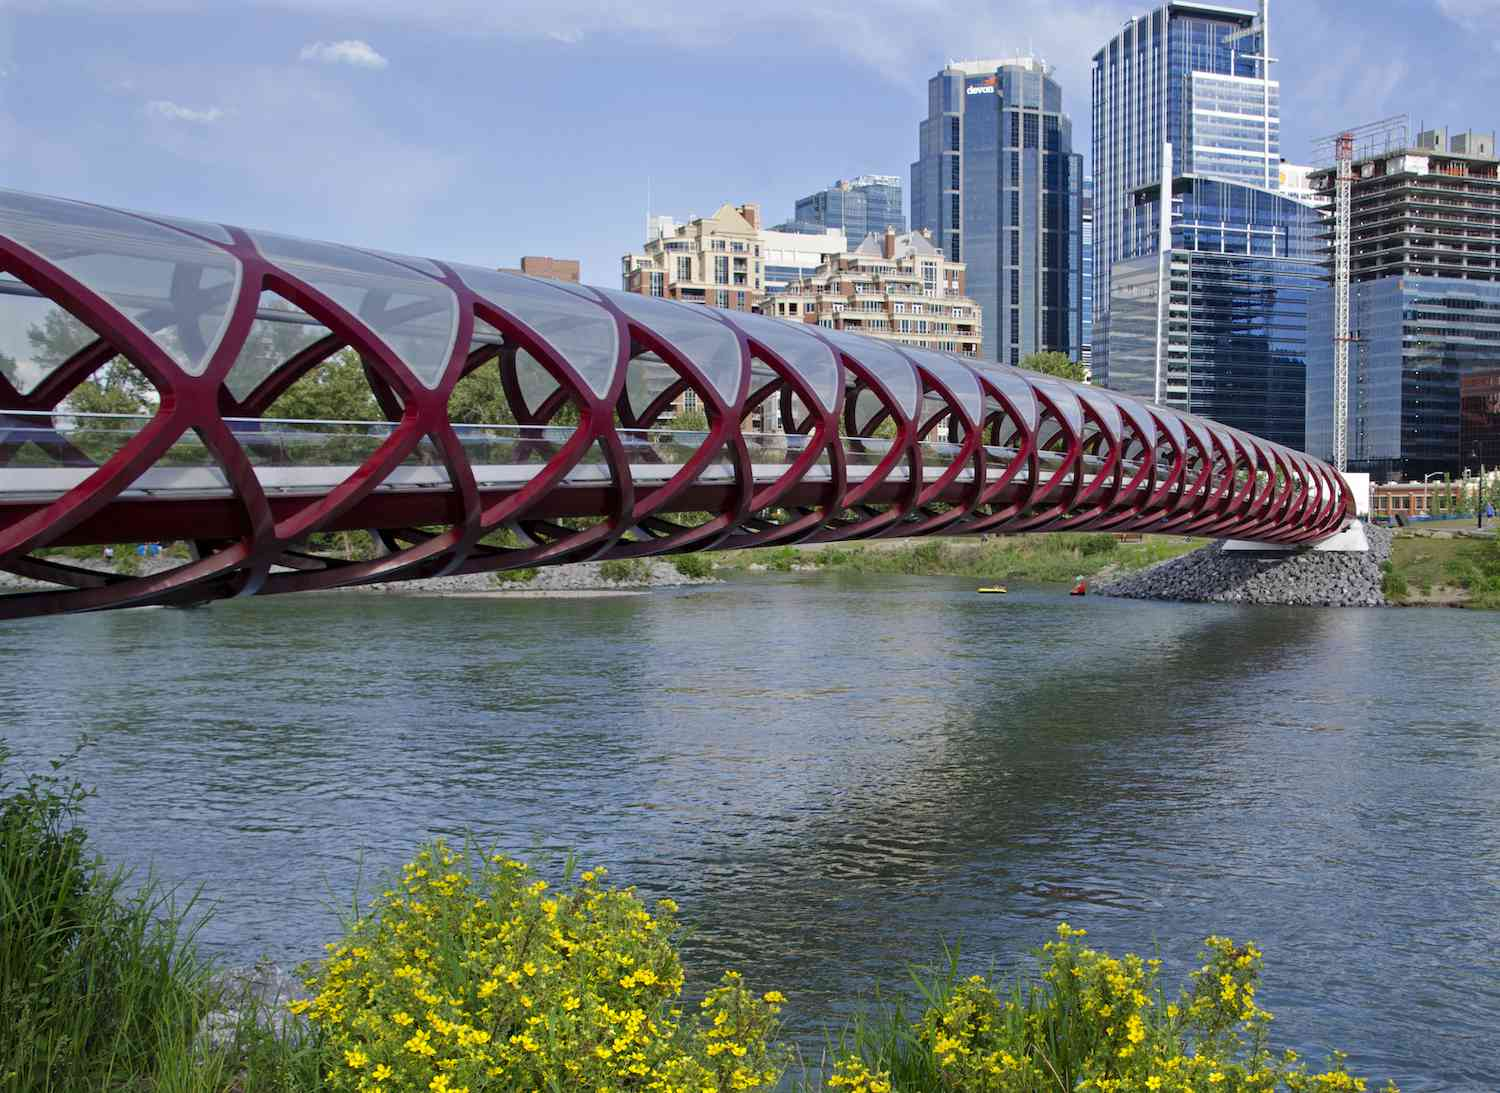 The red, helical Peace Bridge in Calgary on a sunny day